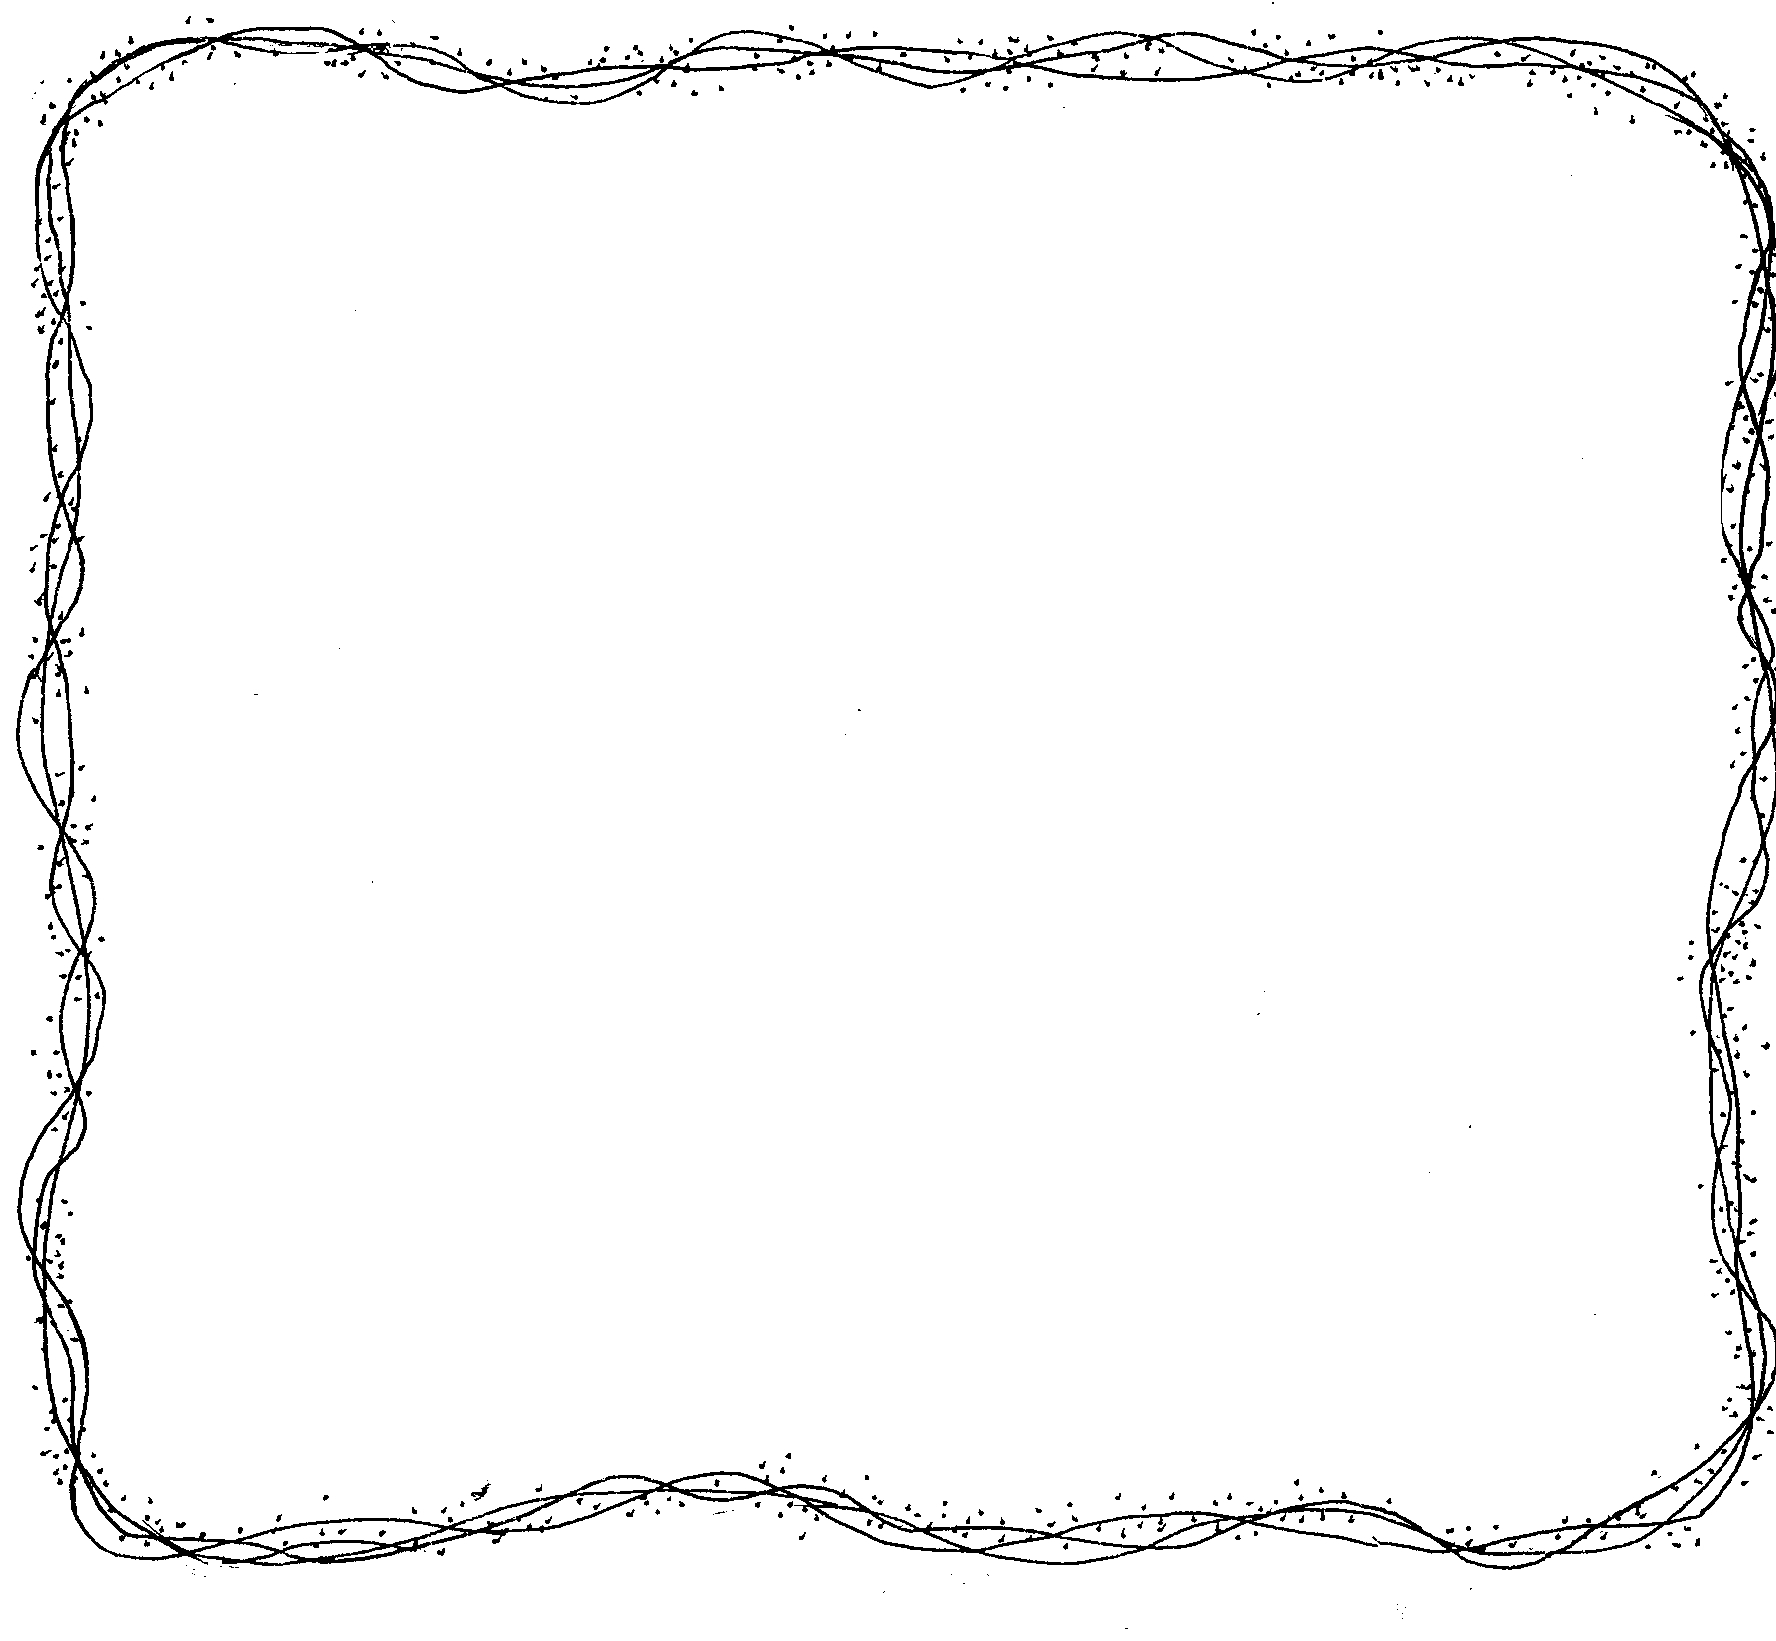 Straight Line Border Clipart : Wavy line border clipart best